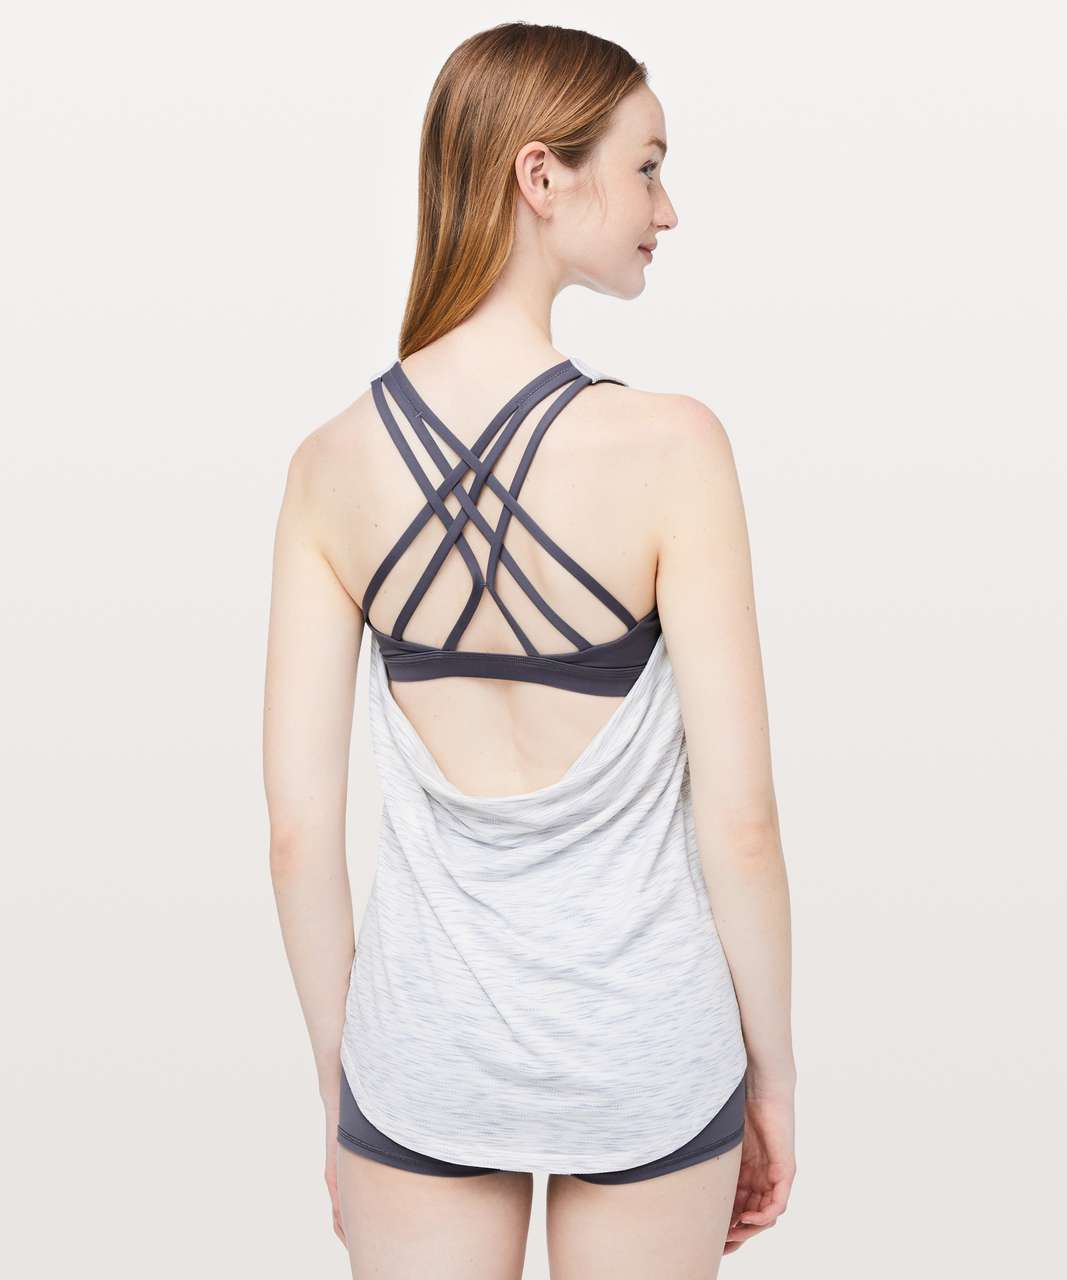 Lululemon Slay The Studio 2-In-1 Tank *Medium Support B/C Cup - Tiger Space Dye Hail White / Titanium